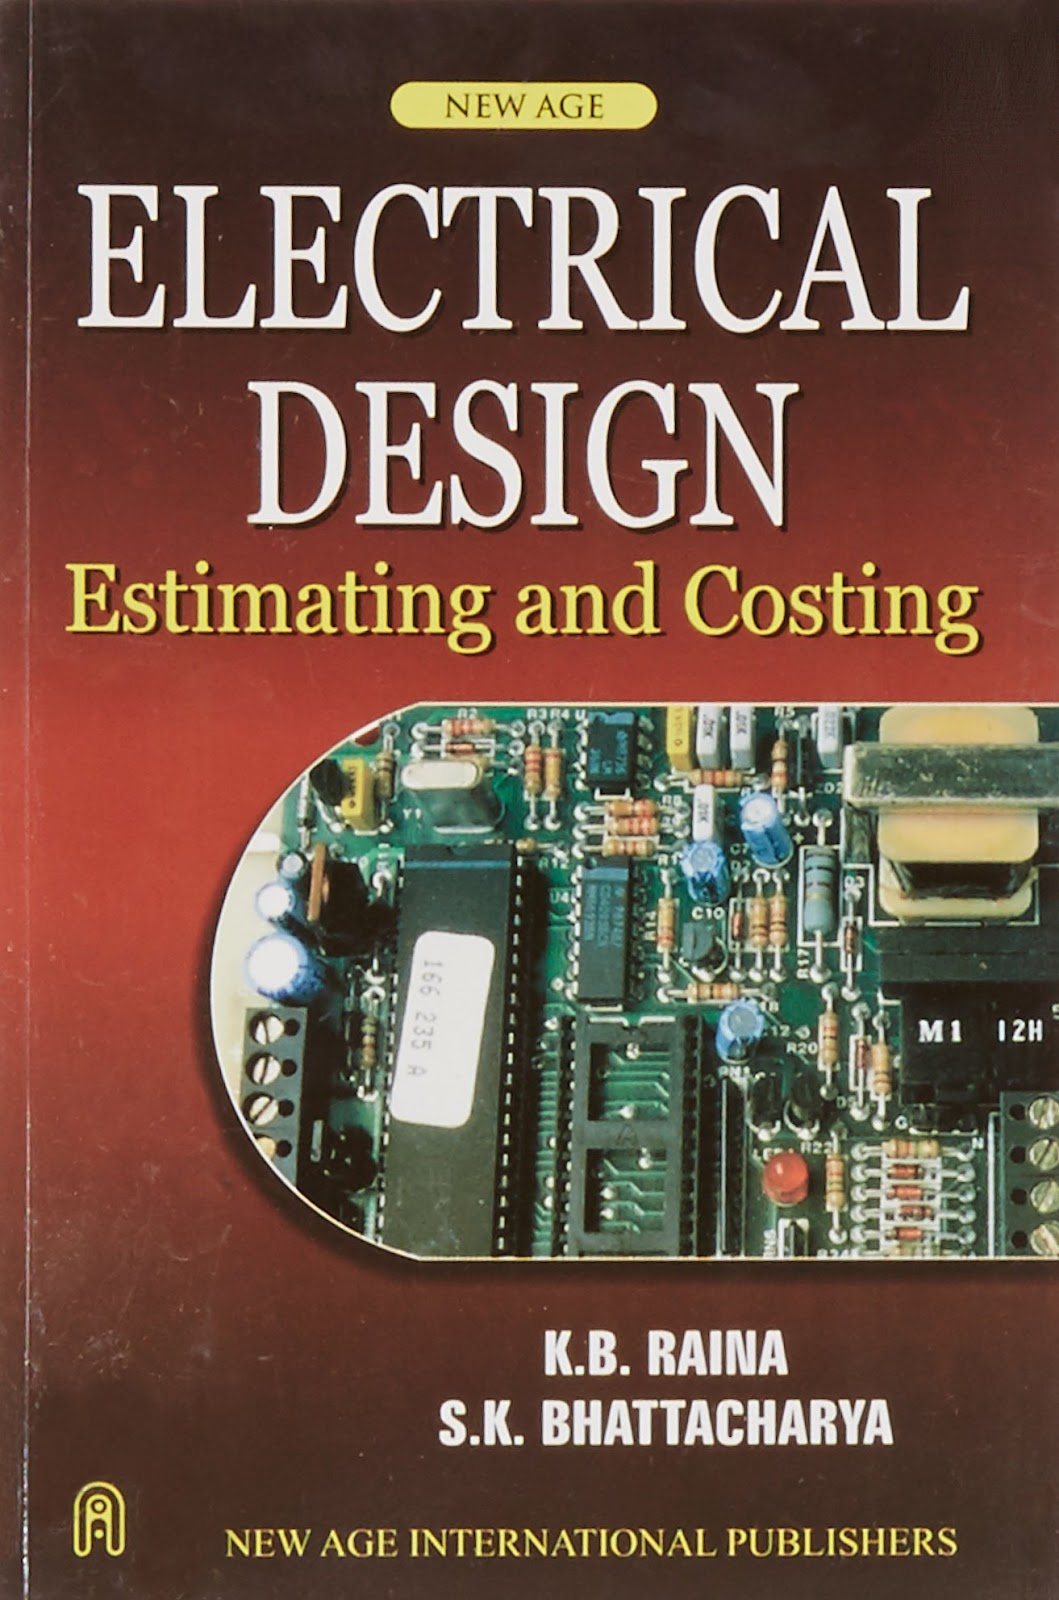 hight resolution of electrical design estimating and costing pdf